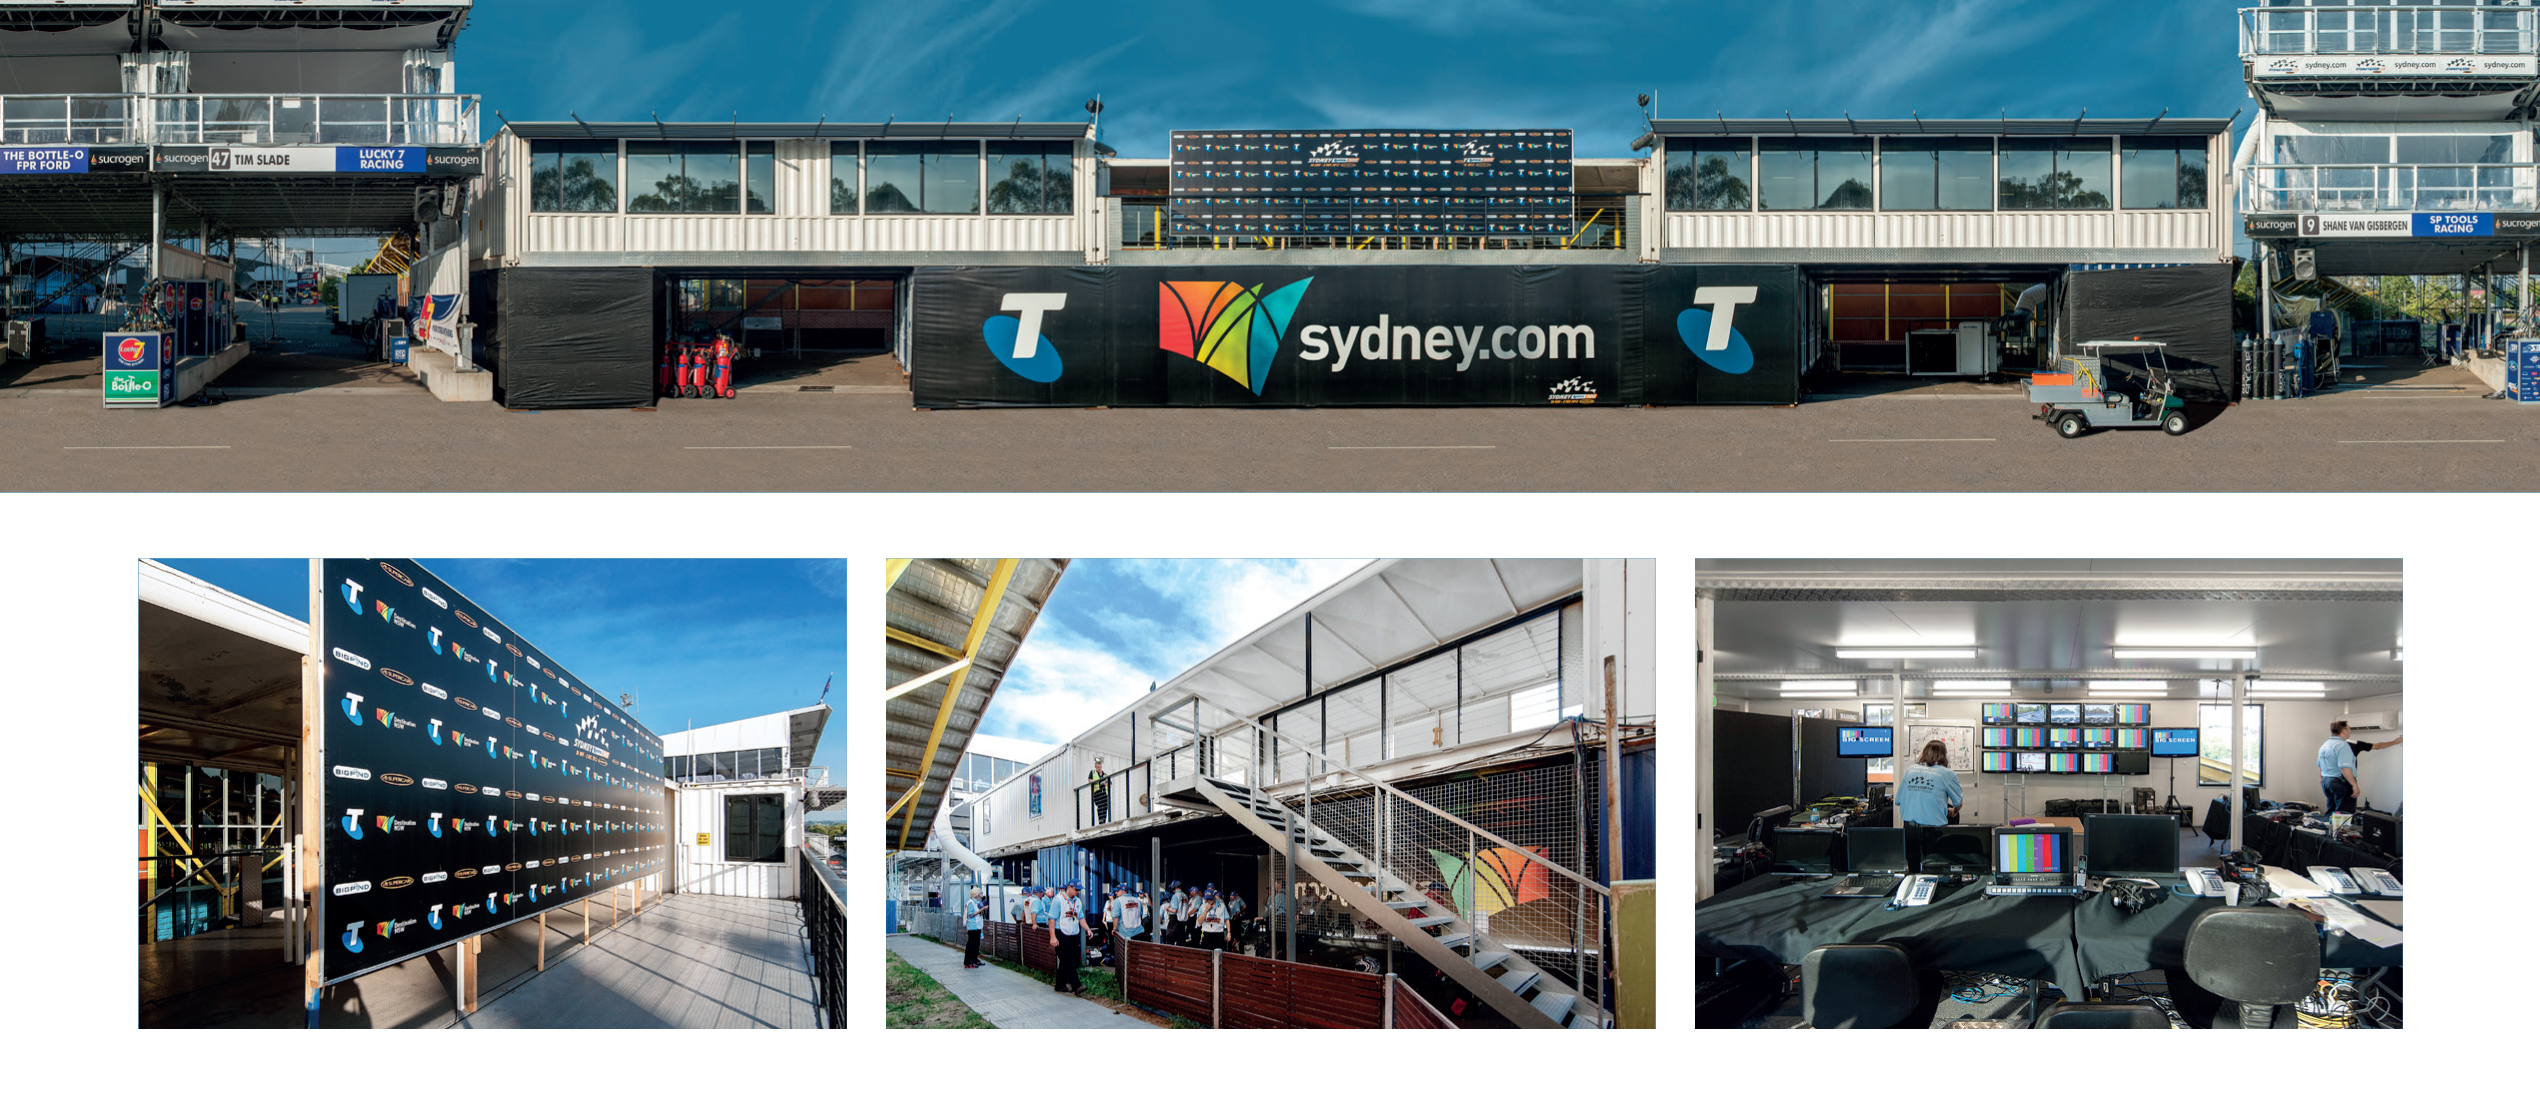 V8 Supercars Media amp Race Control Building Shipping